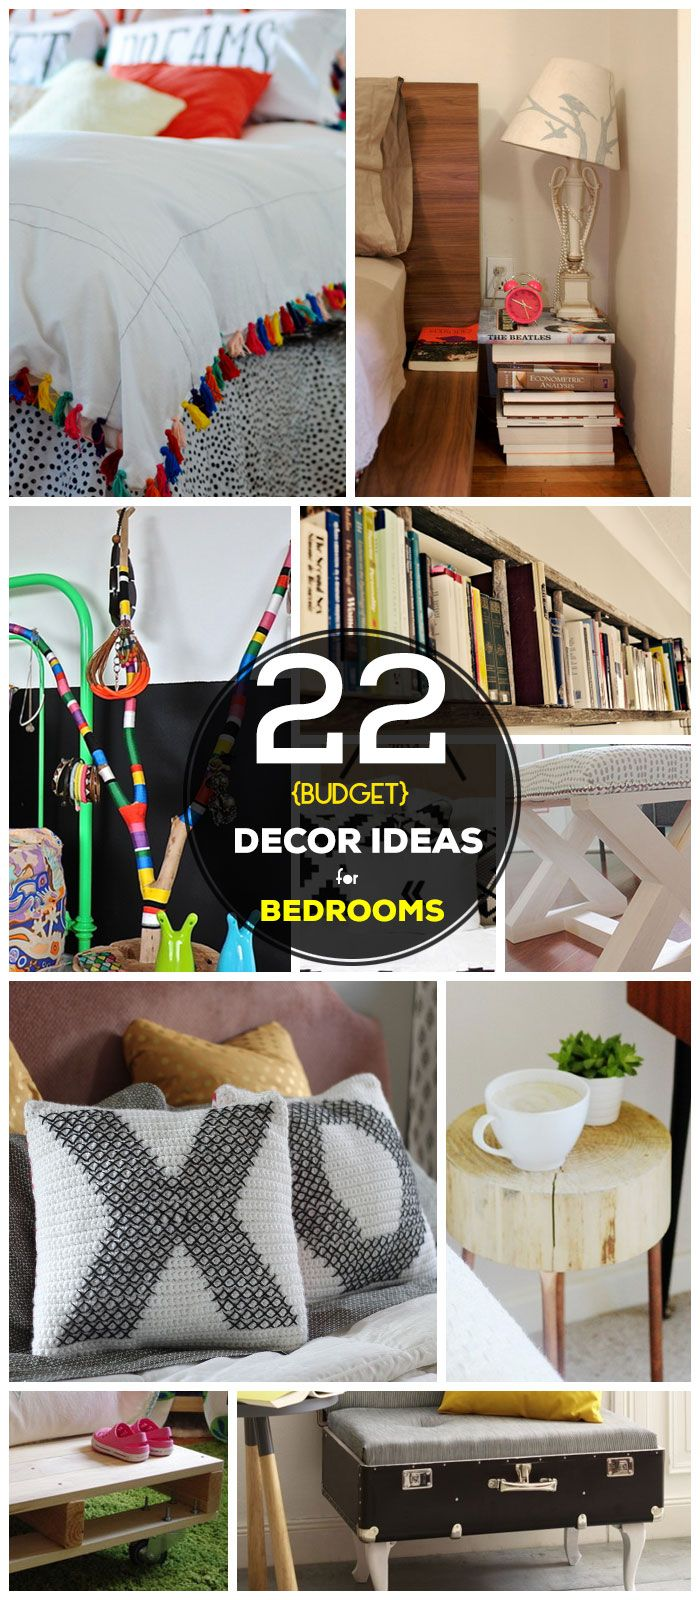 26 best bedroom decor ideas images on pinterest | bedroom ideas